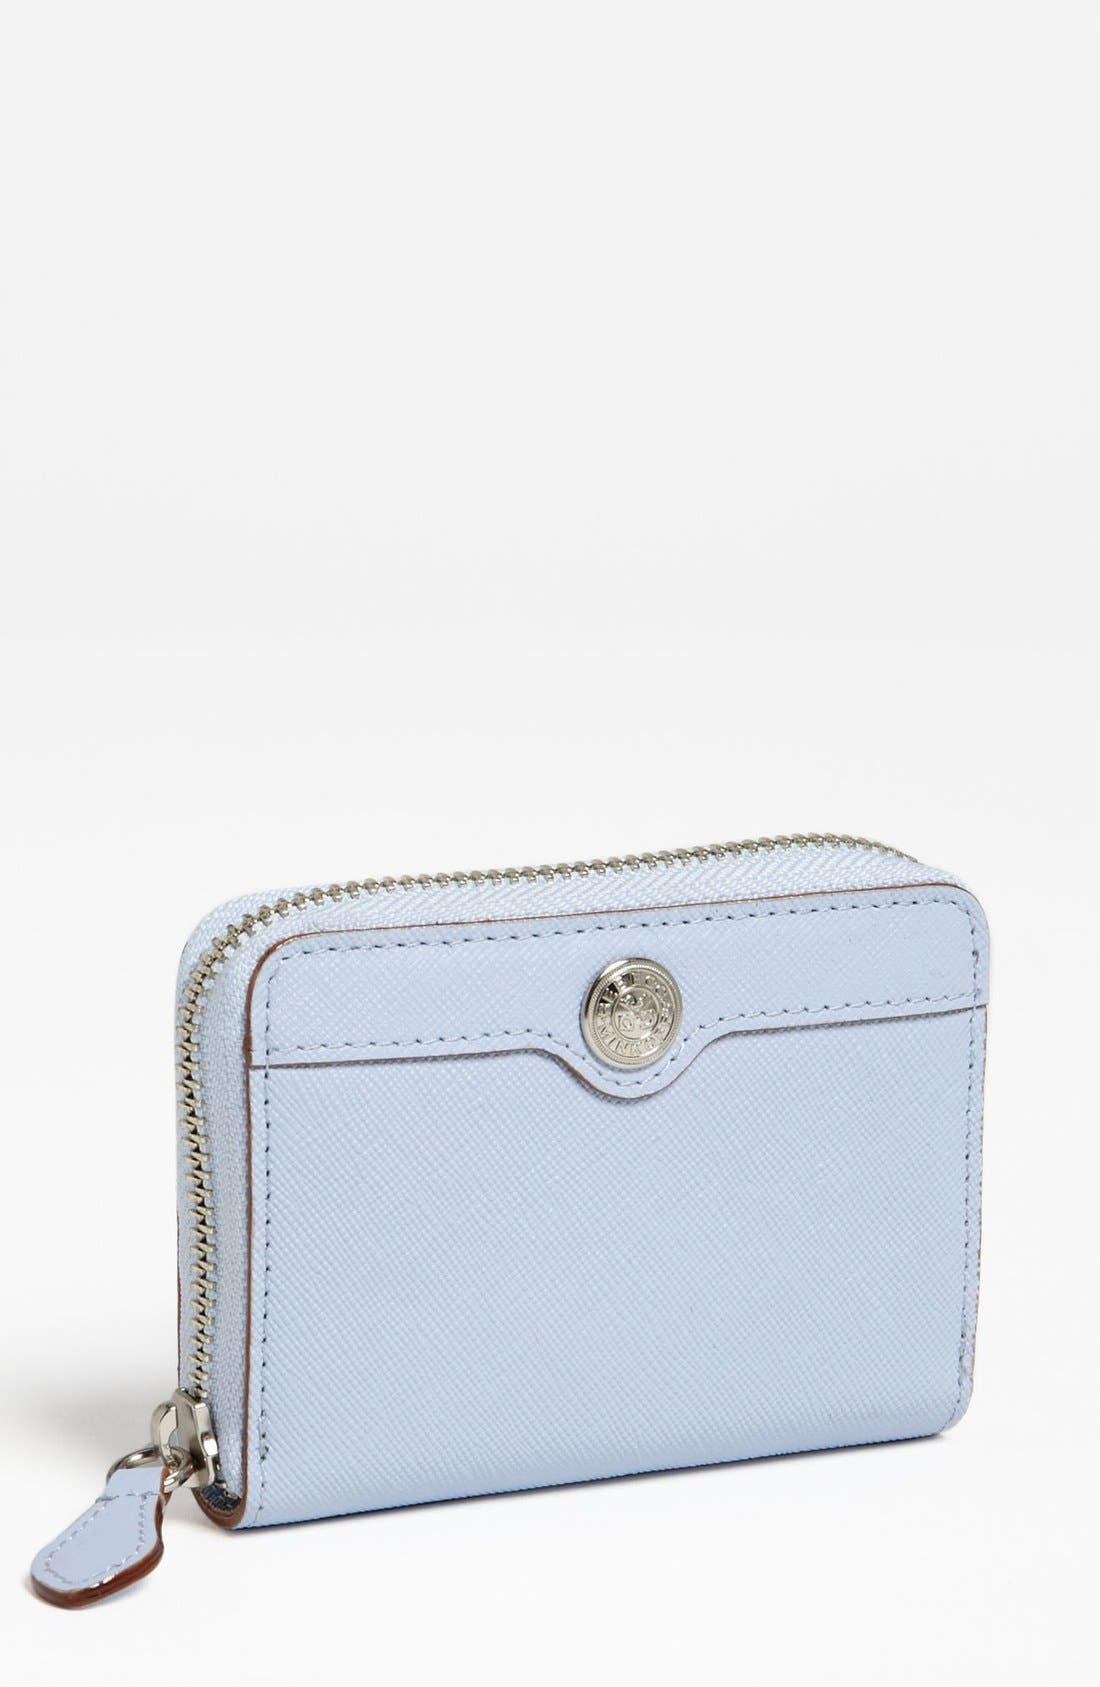 Main Image - Rebecca Minkoff 'Frannie' Leather French Wallet